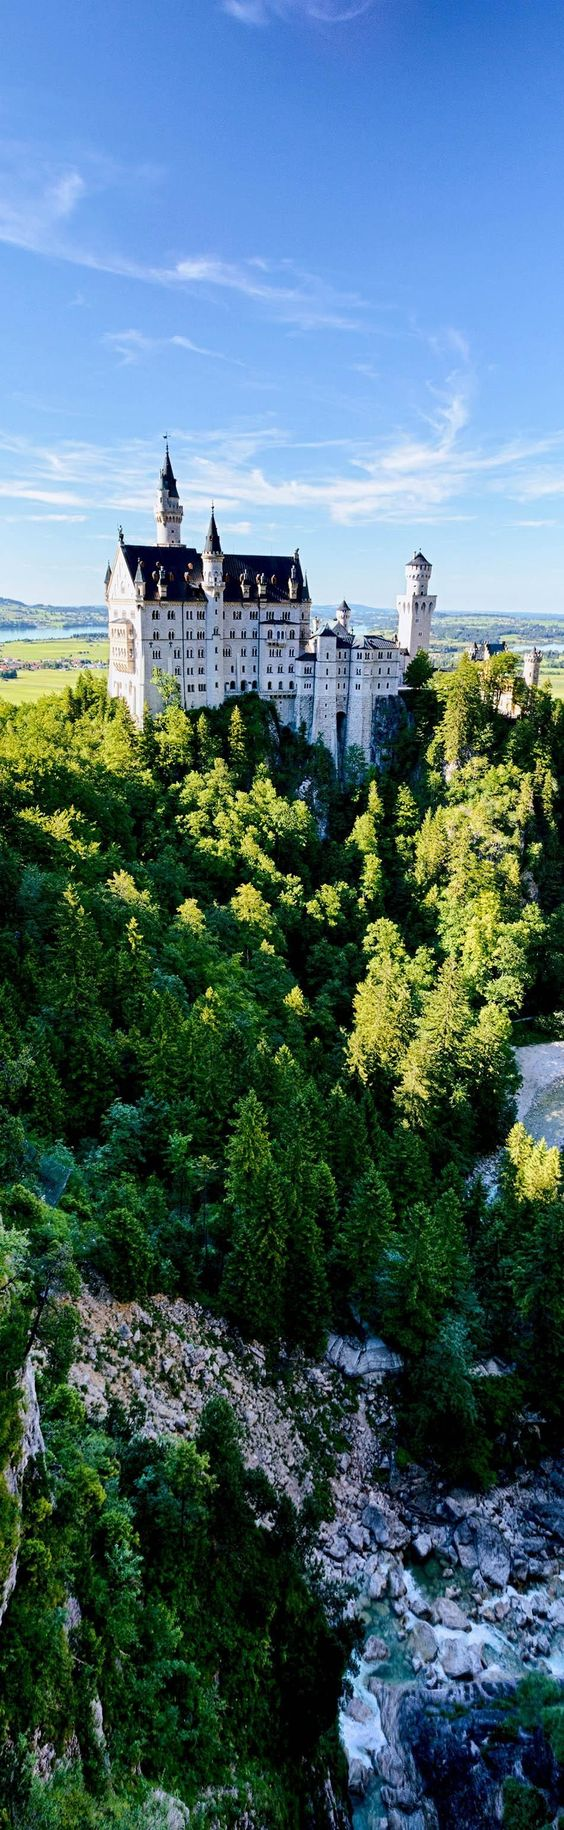 Amazing View of Neuschwanstein Castle, Bavaria, Germany | 23 Fascinating Photos that Will Remind You How Incredible Germany Is